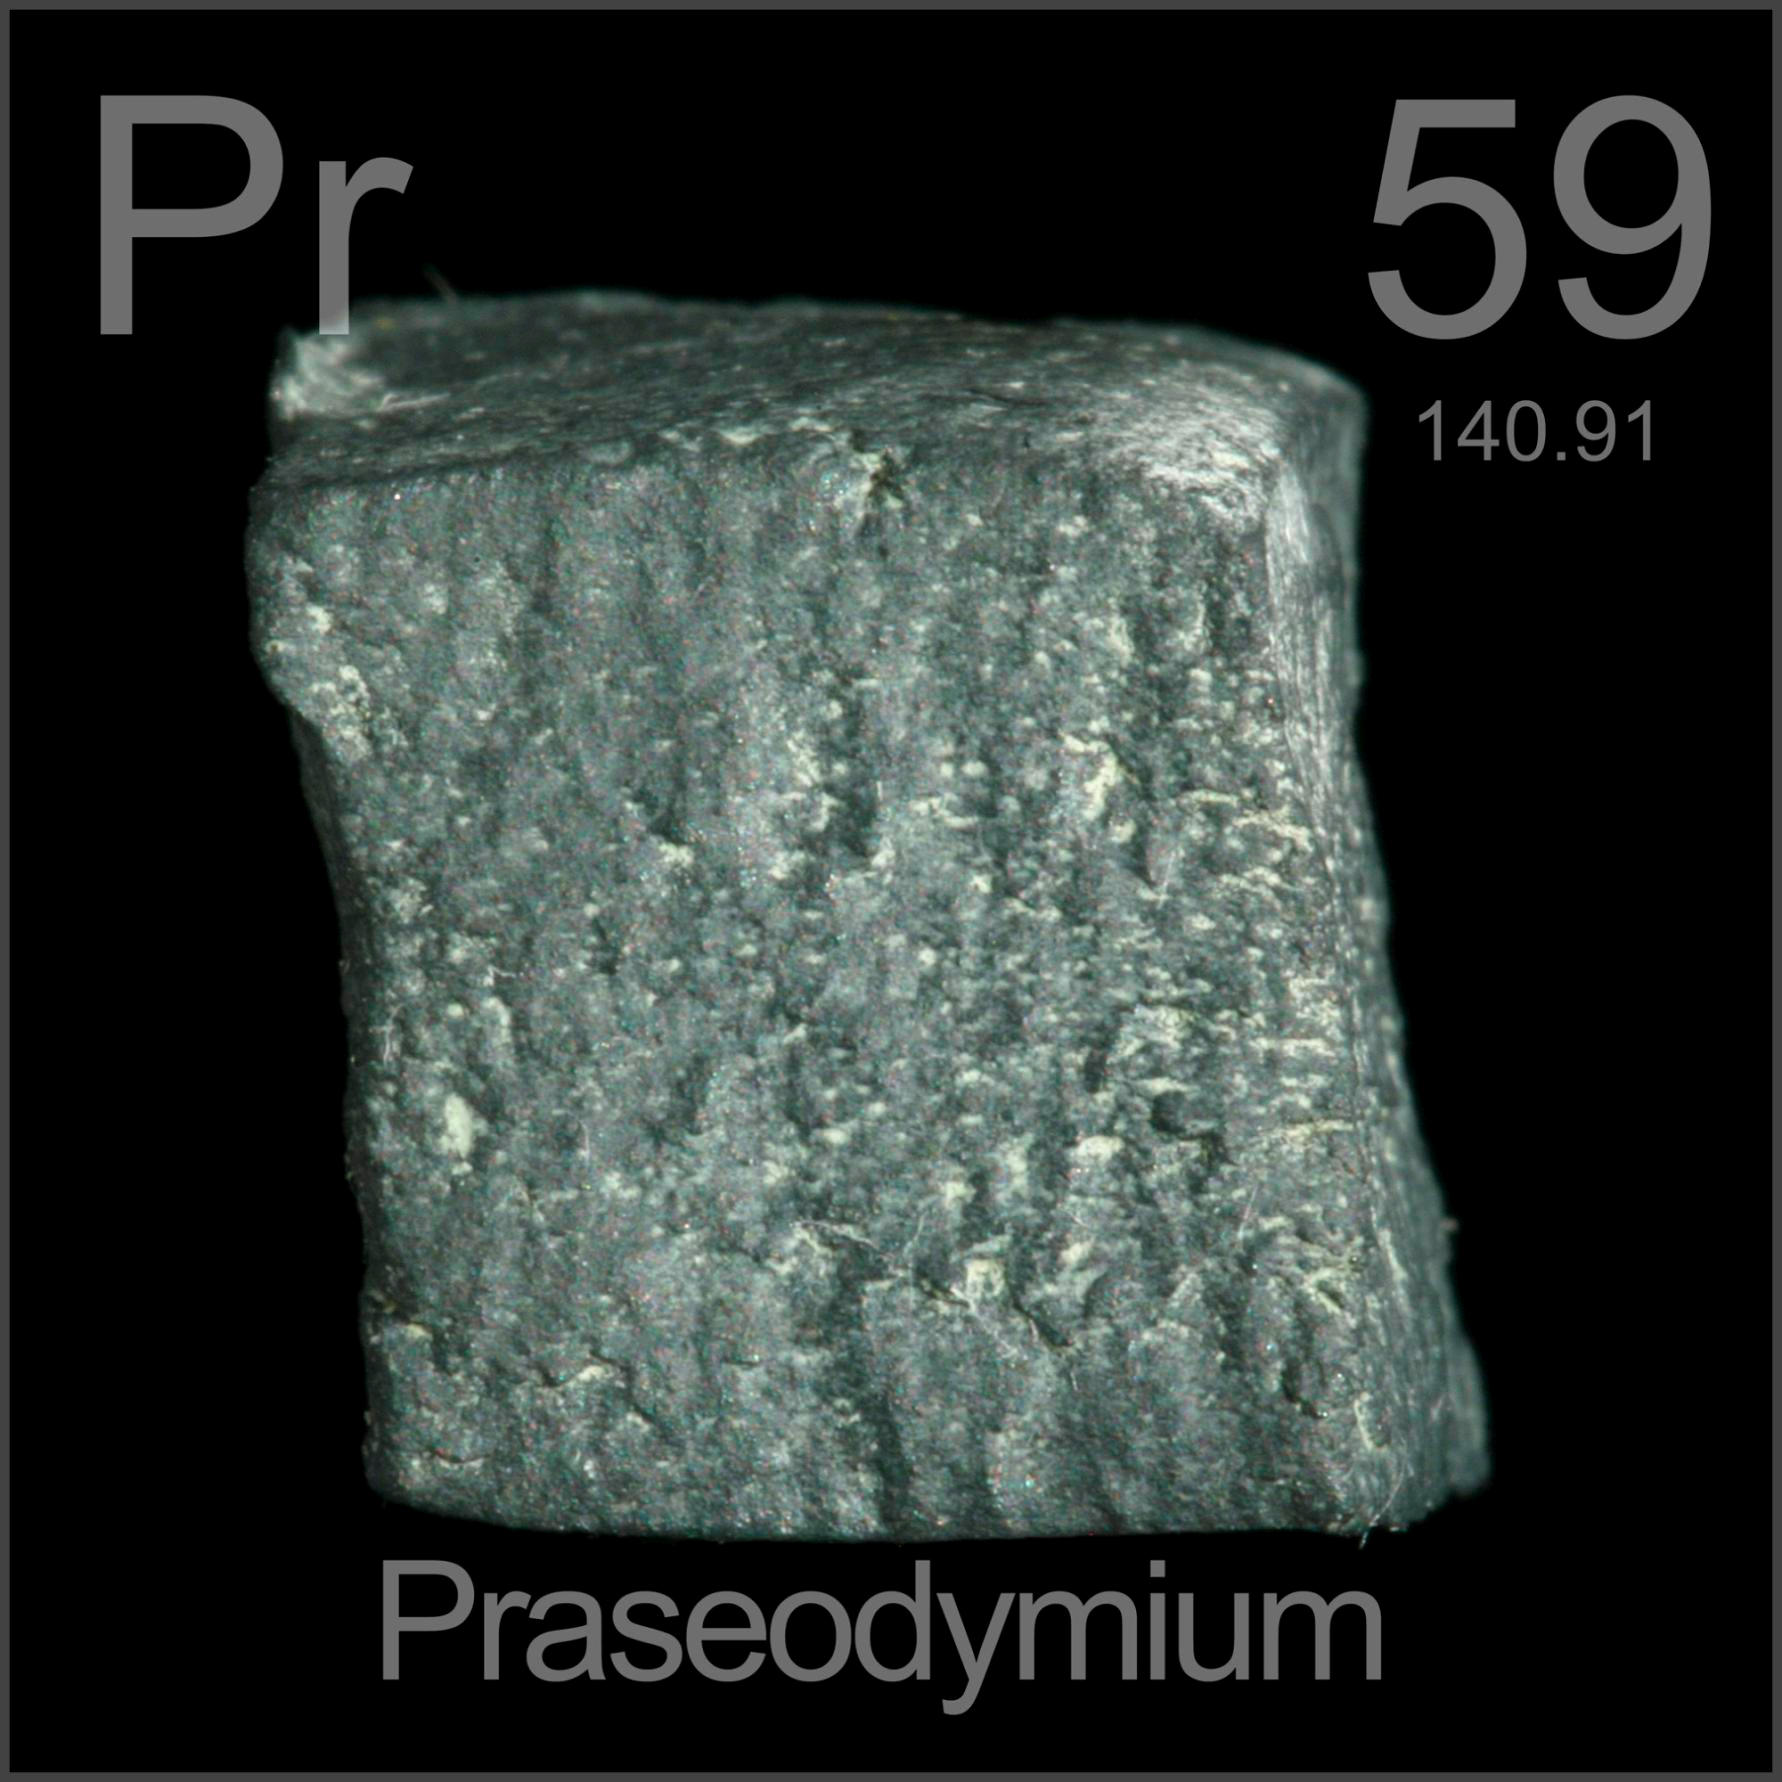 Element Periodic Table >> Facts, pictures, stories about the element Praseodymium in the Periodic Table